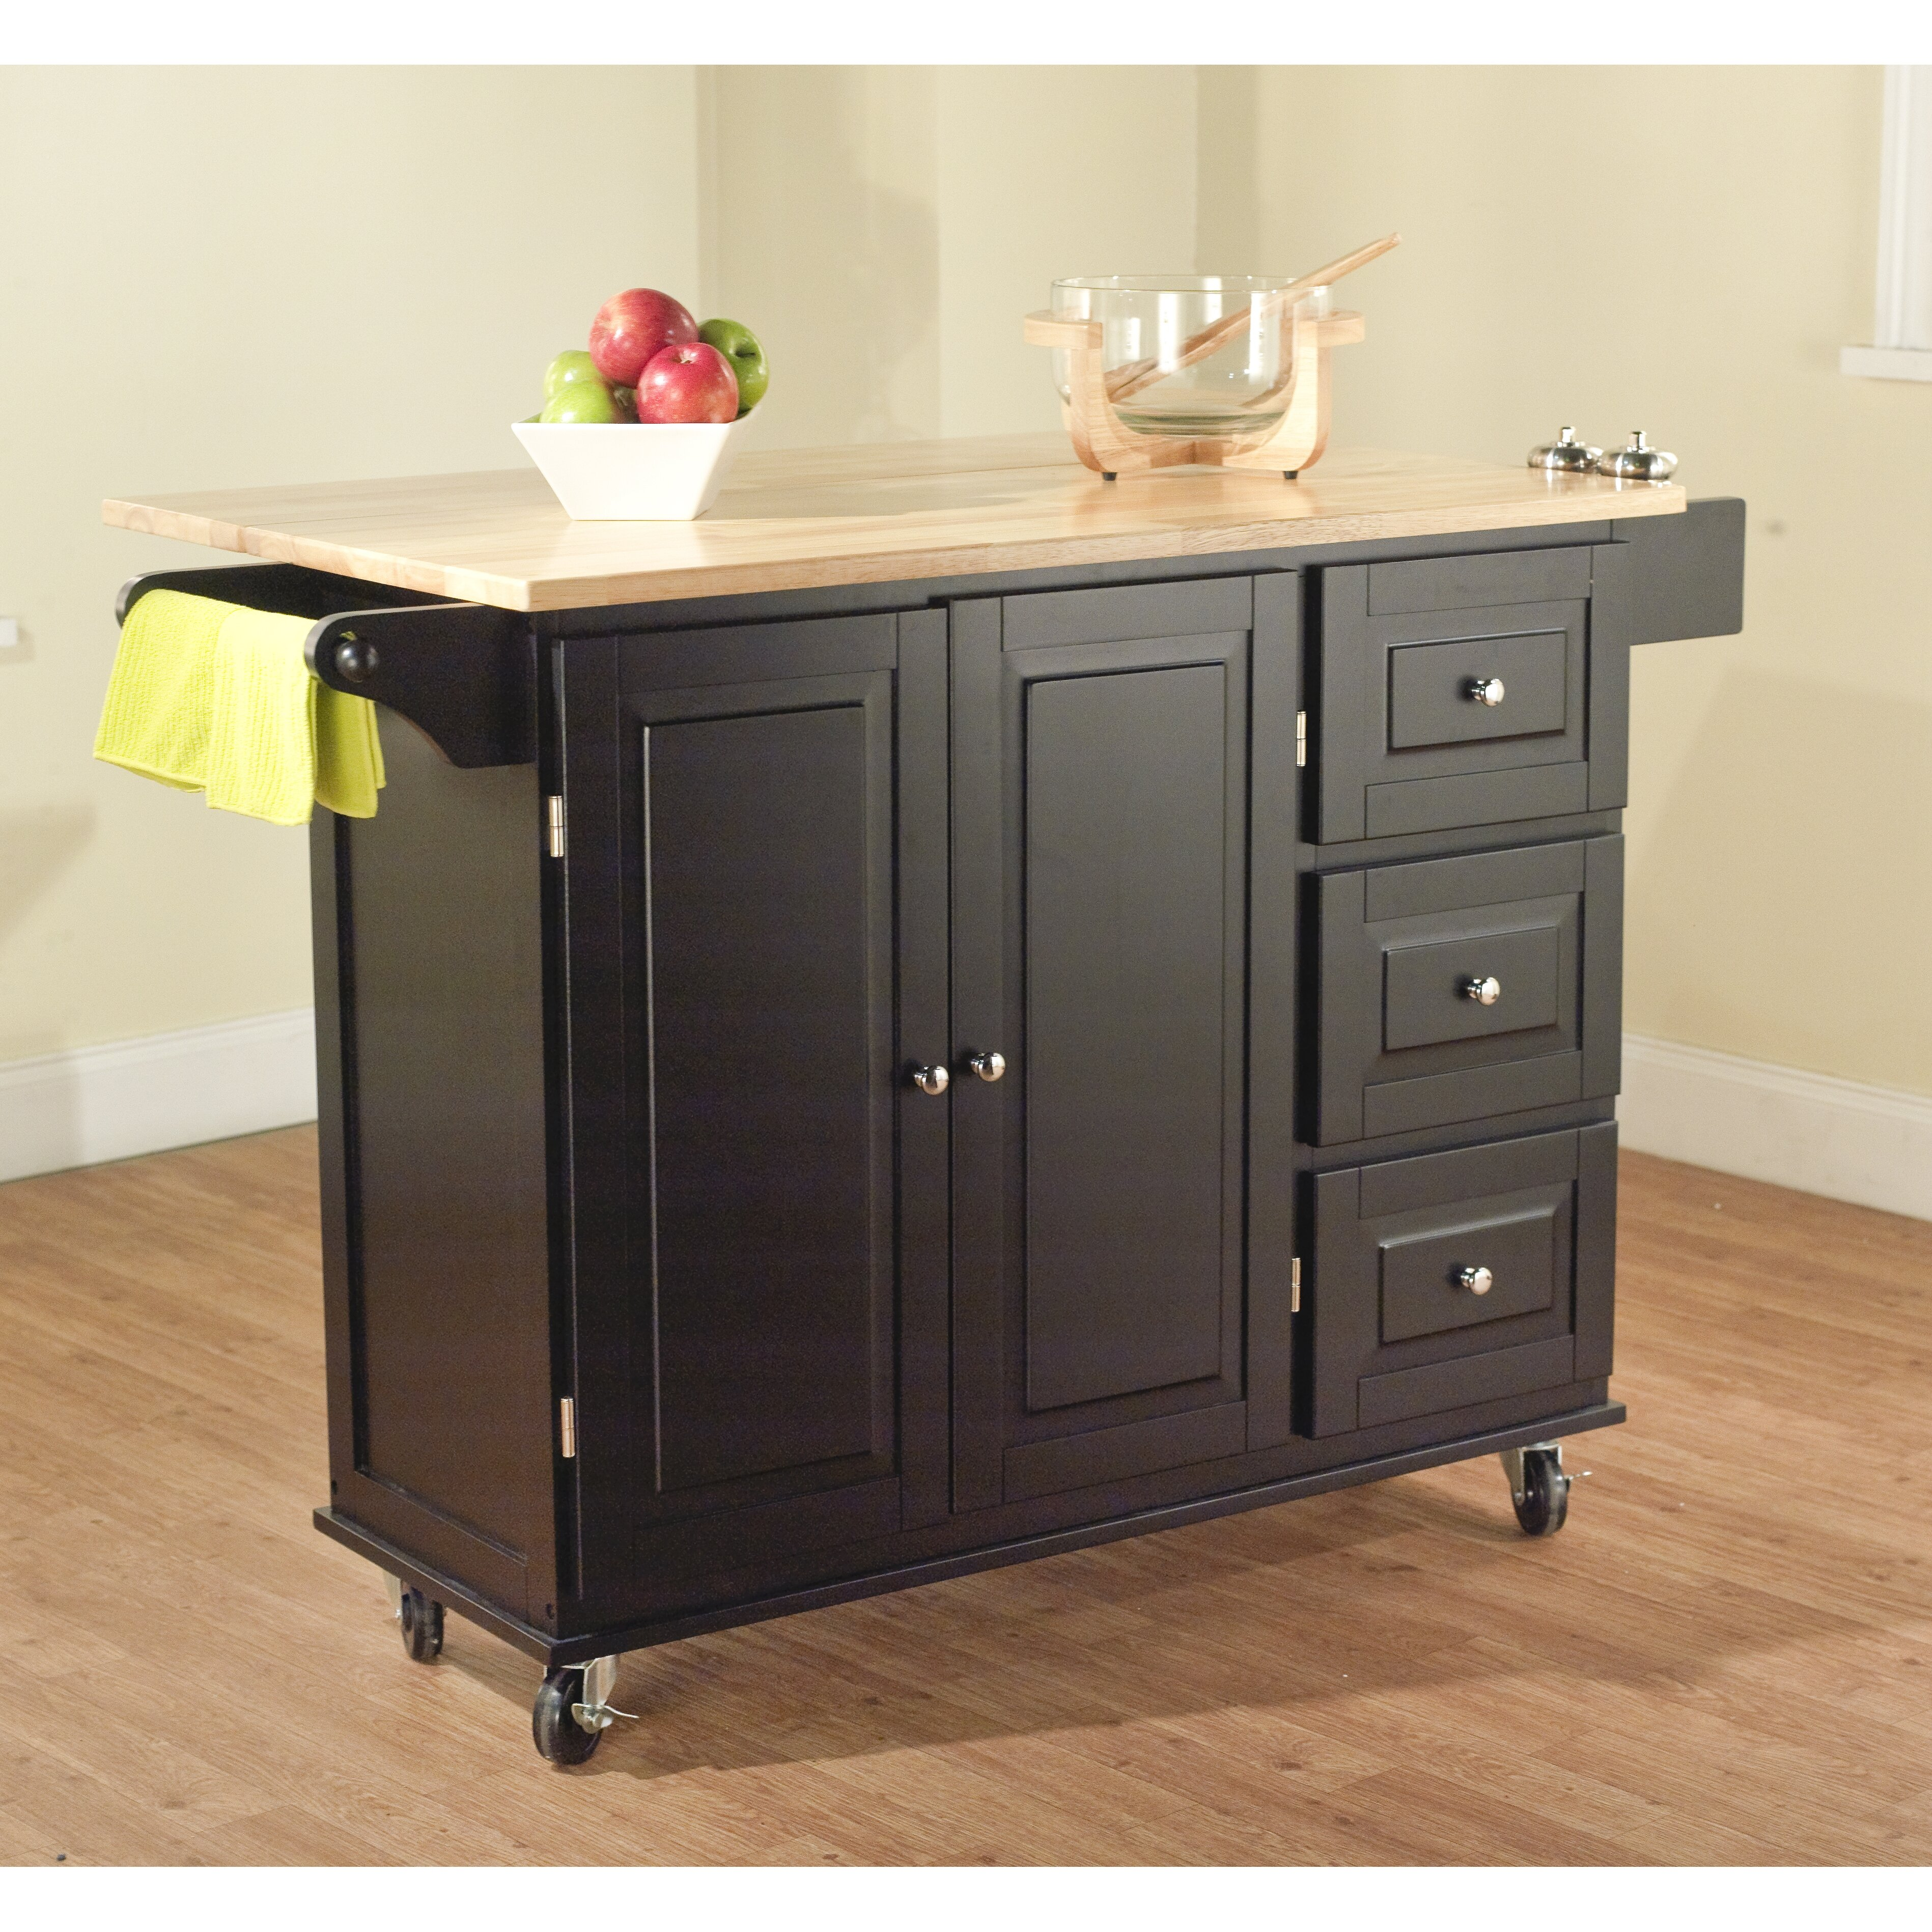 Darby Home Co Arpdale Kitchen Island With Wood Top Reviews Wayfair